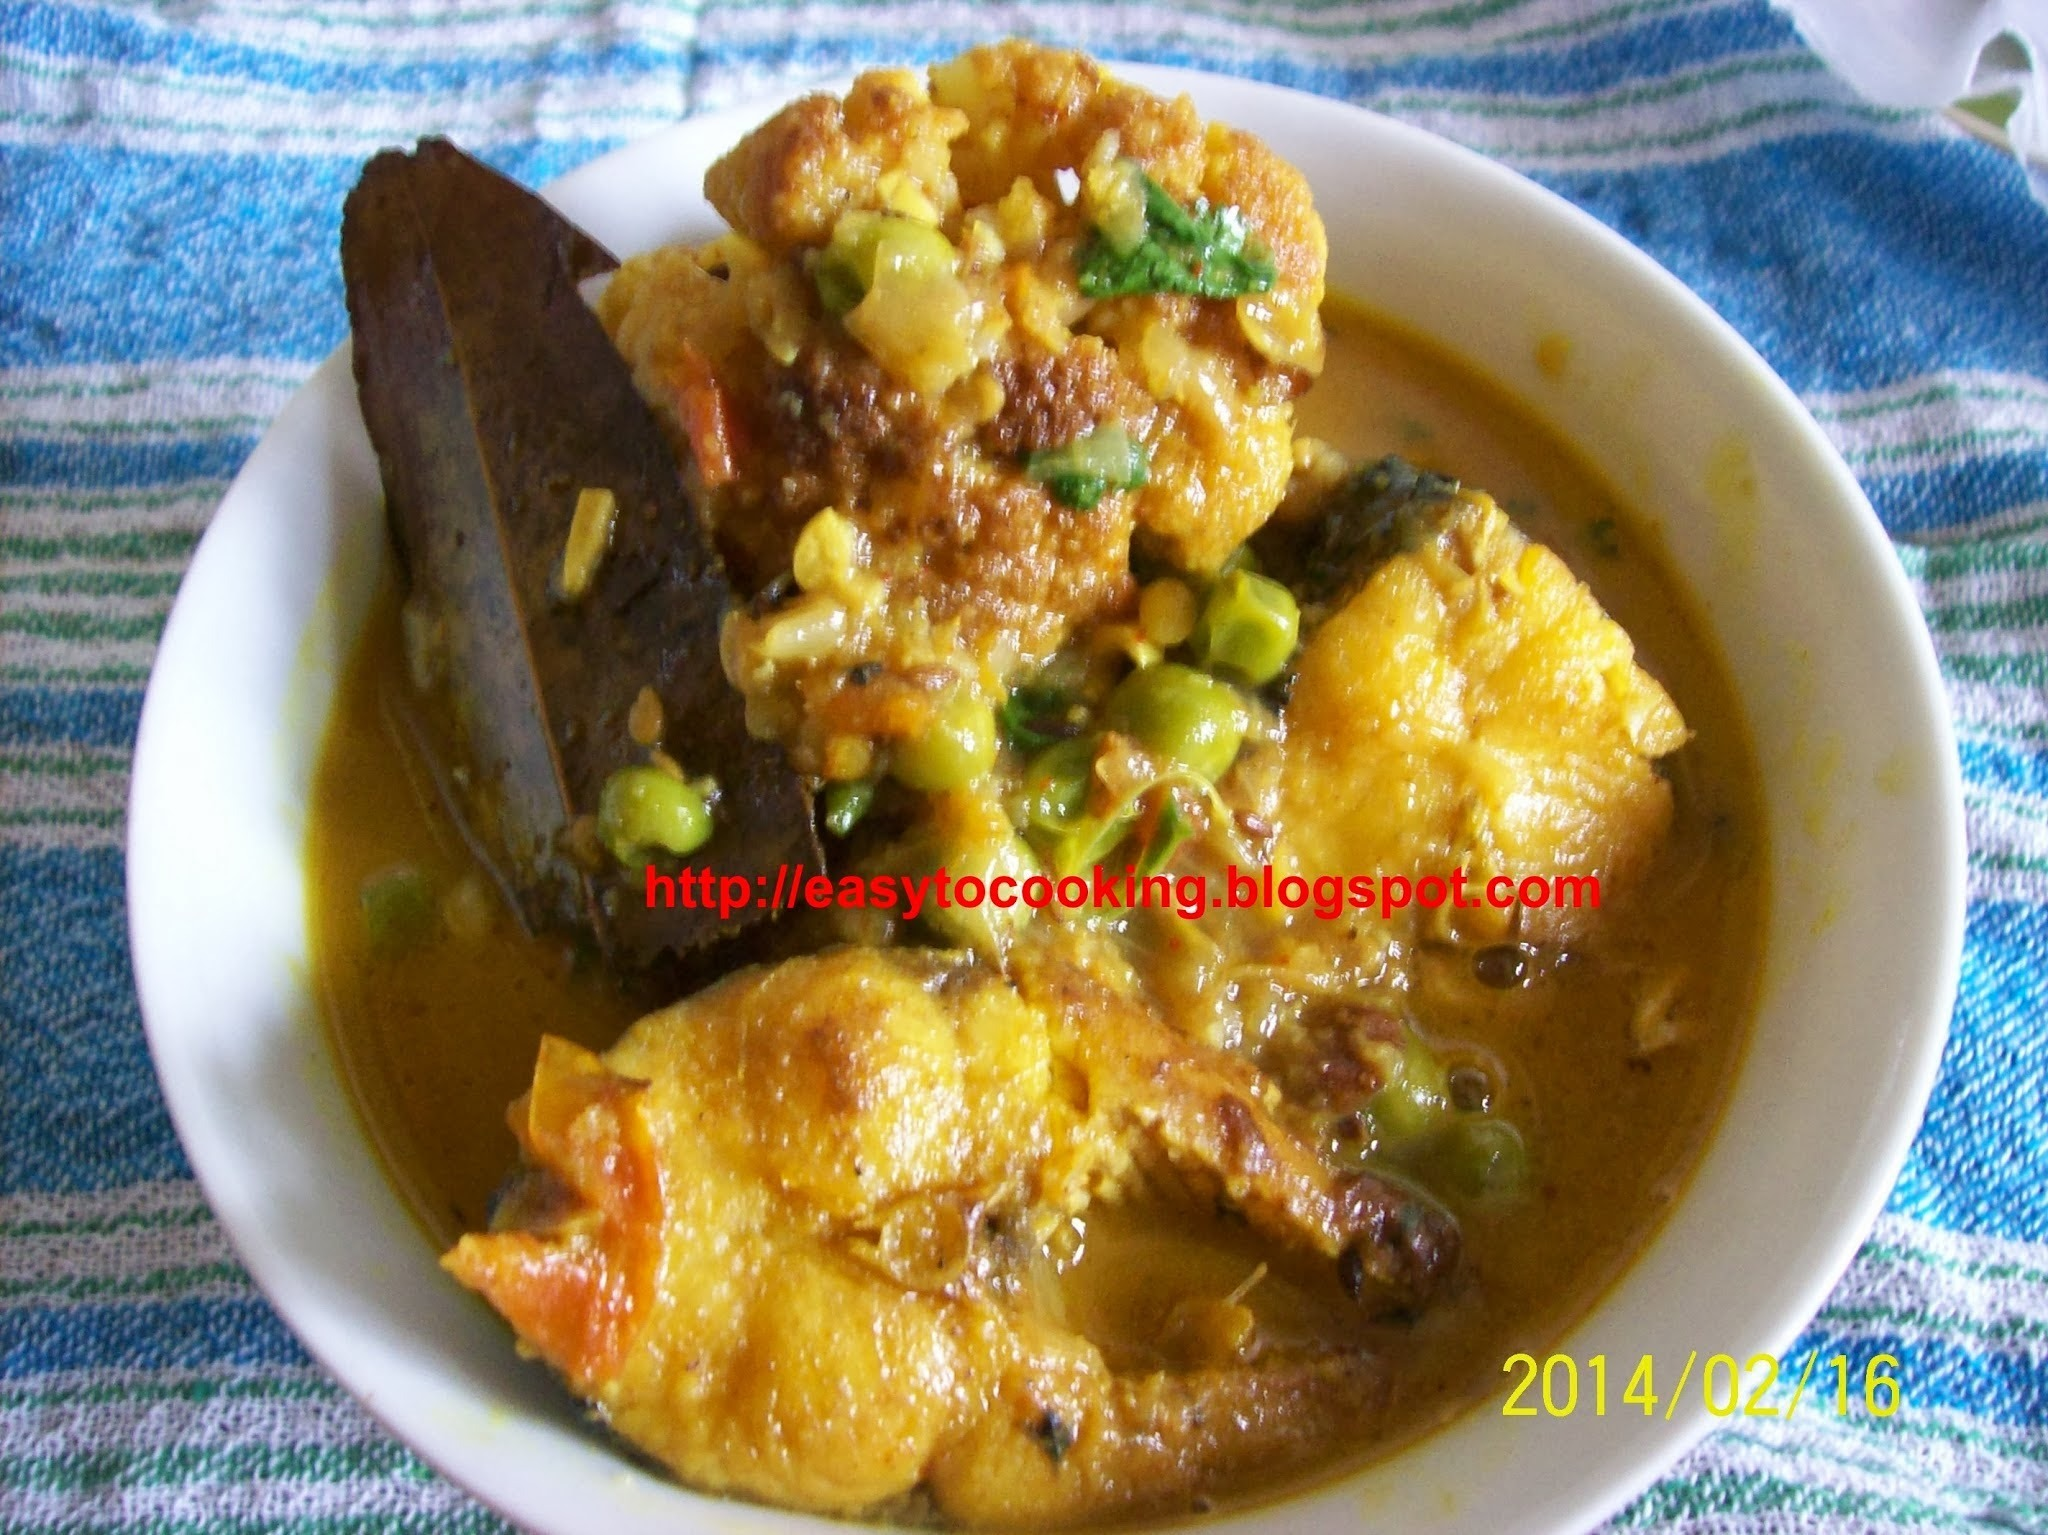 Fish curry (Macher jhol) with cauliflower